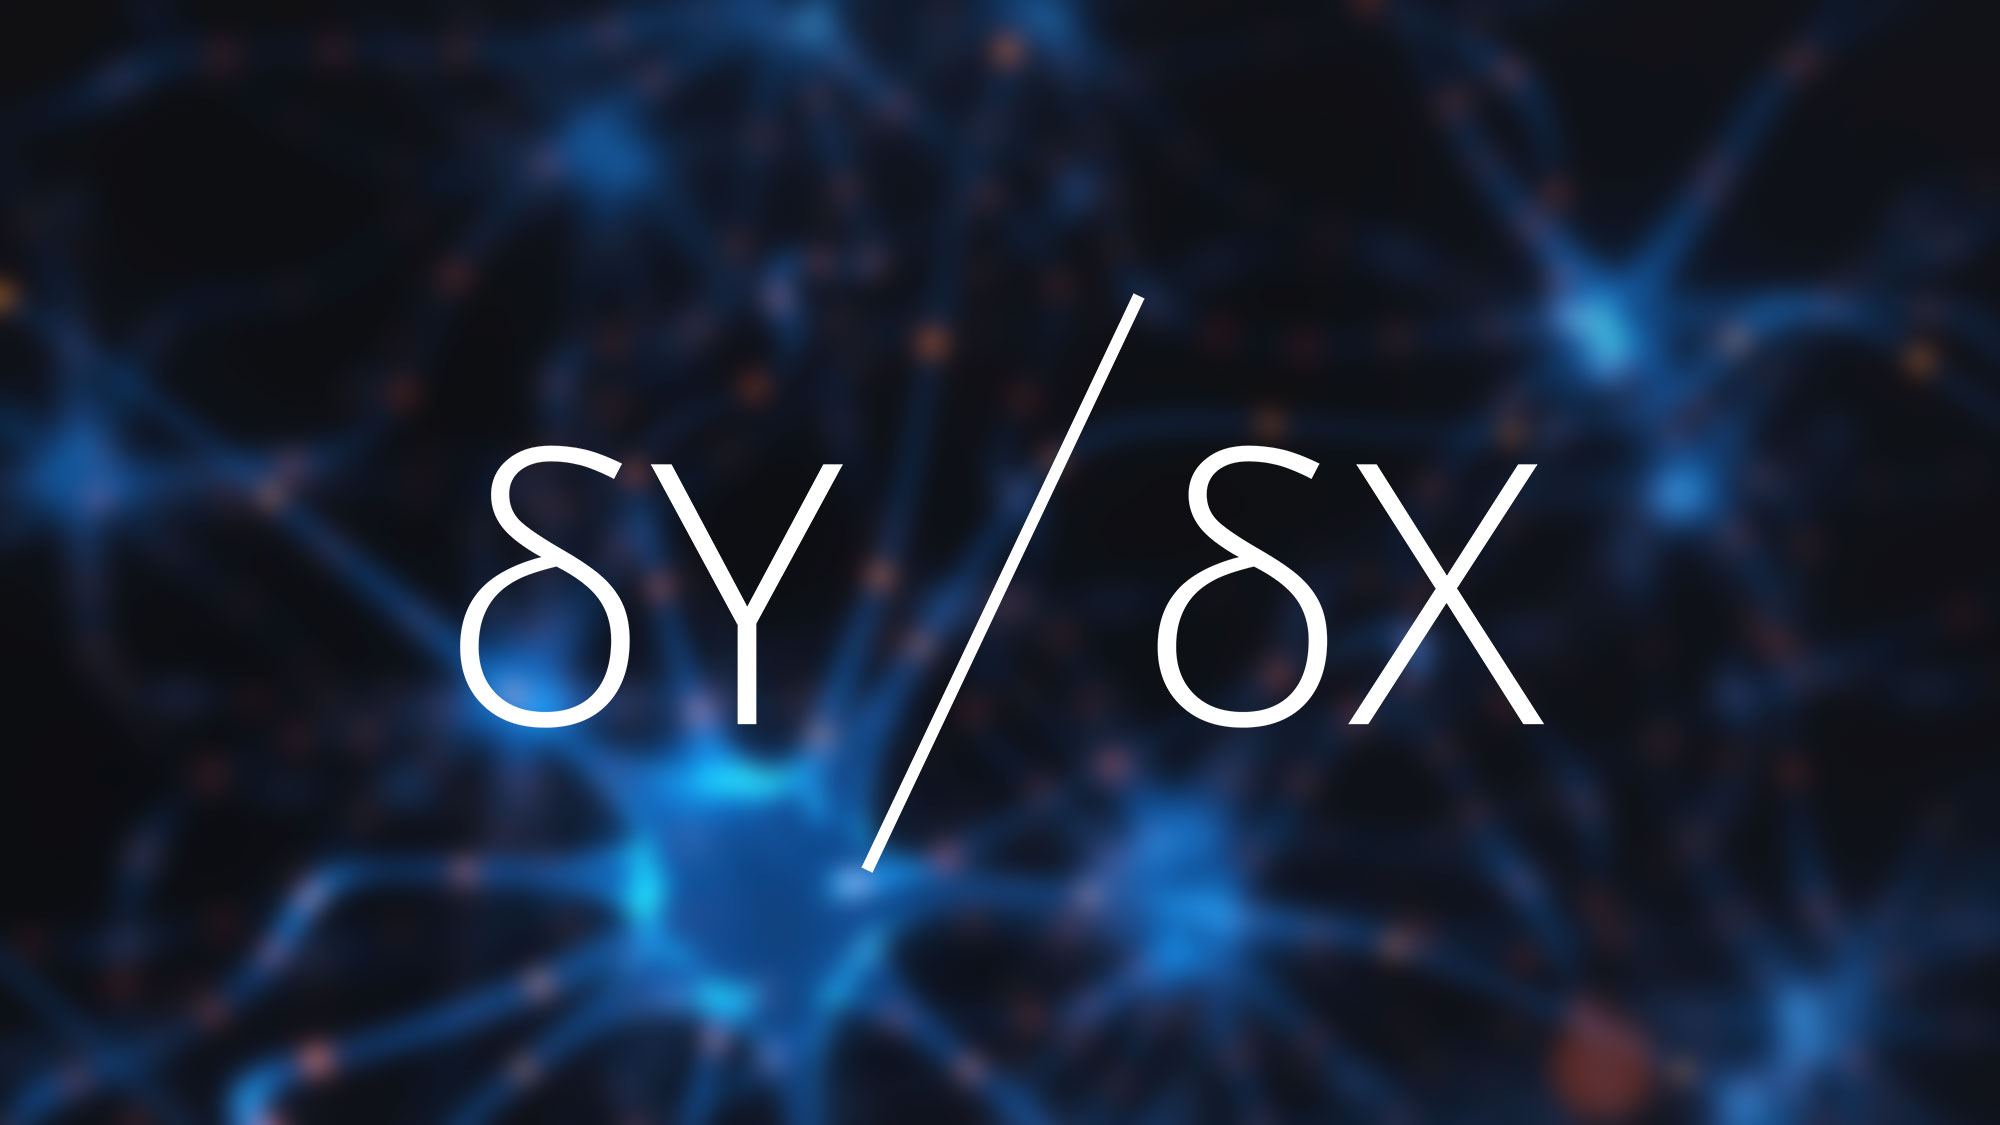 Decentralized exchange dYdX raised $65M in Series C fundraiser led by Paradigm